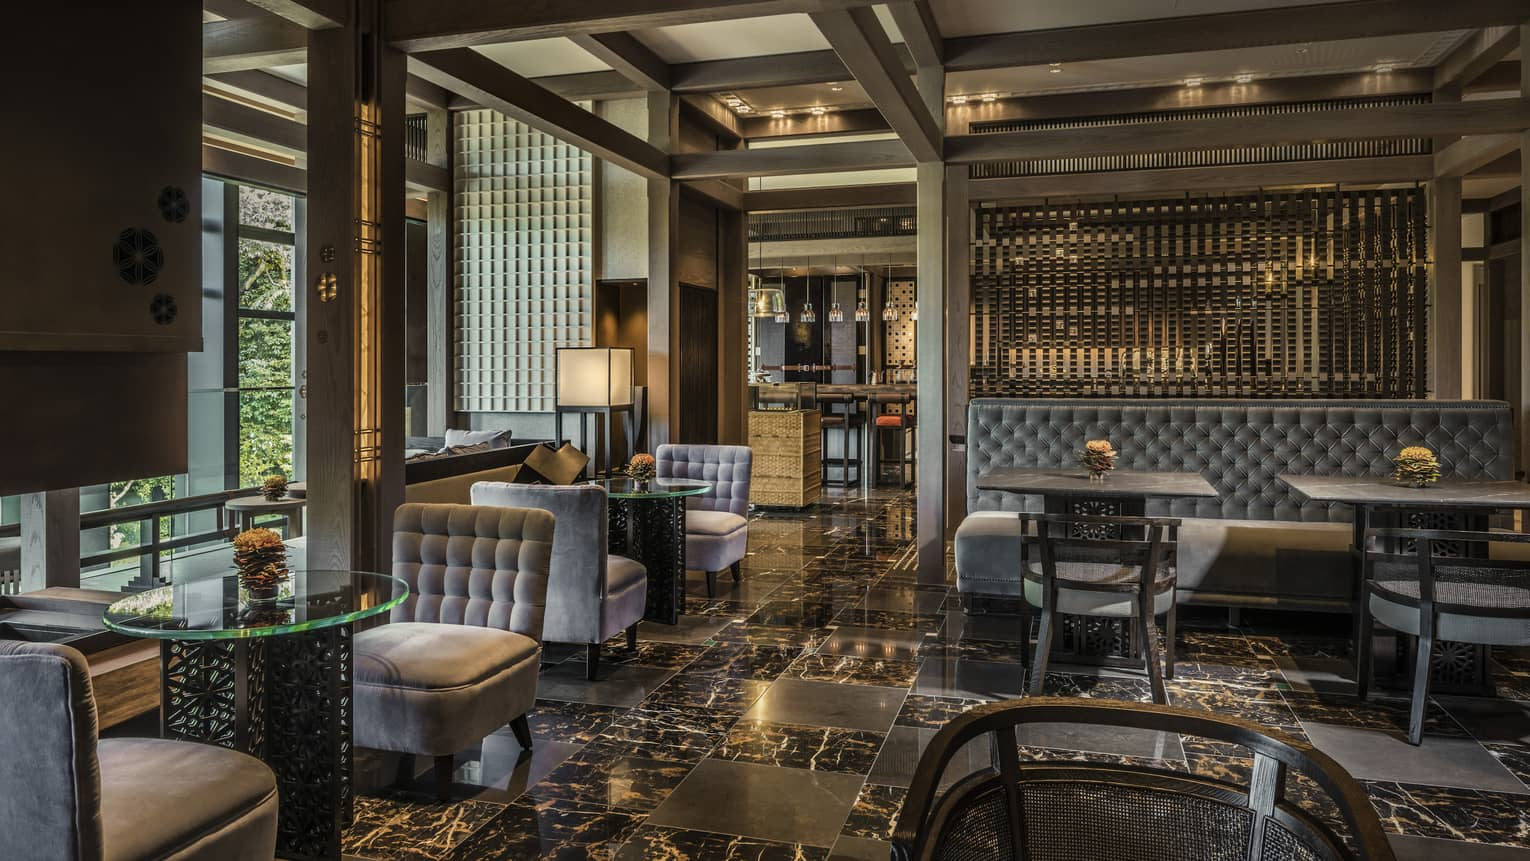 Plush grey velvet sofas, chairs on black marble floors in The Lounge dining room